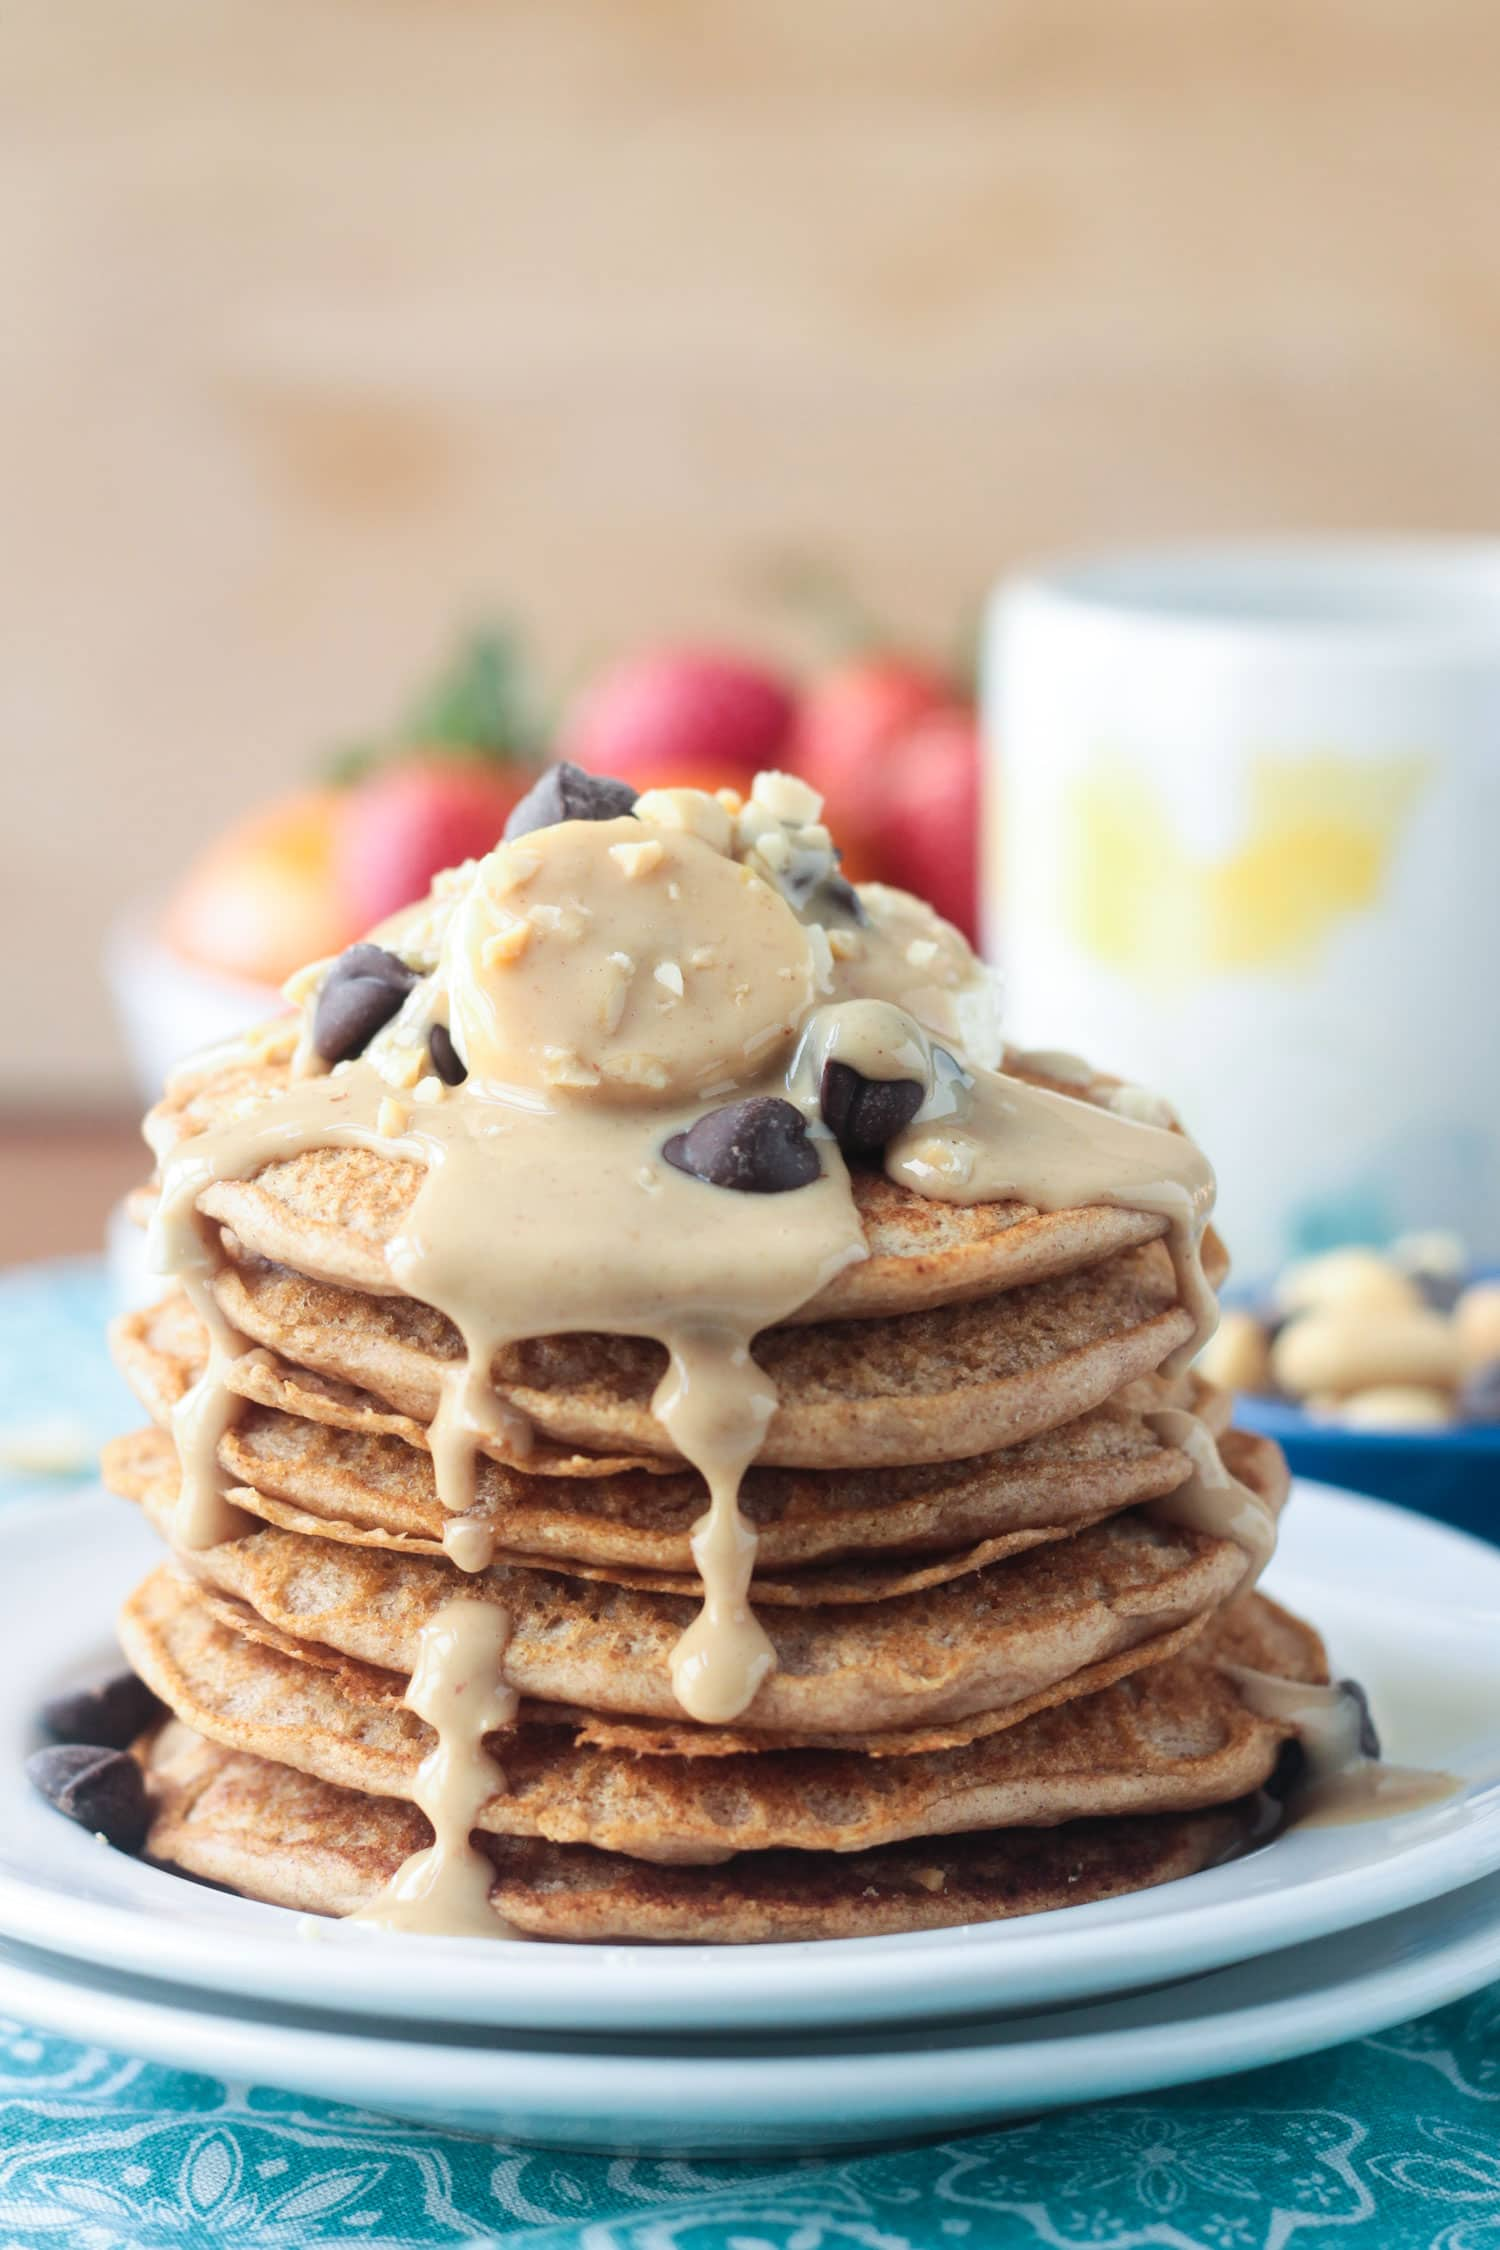 Stack of peanut butter pancakes drizzled in peanut butter syrup and topped with fresh banana slices and chocolate chips. A bowl of fresh oranges and berries and a coffee mug in the background.